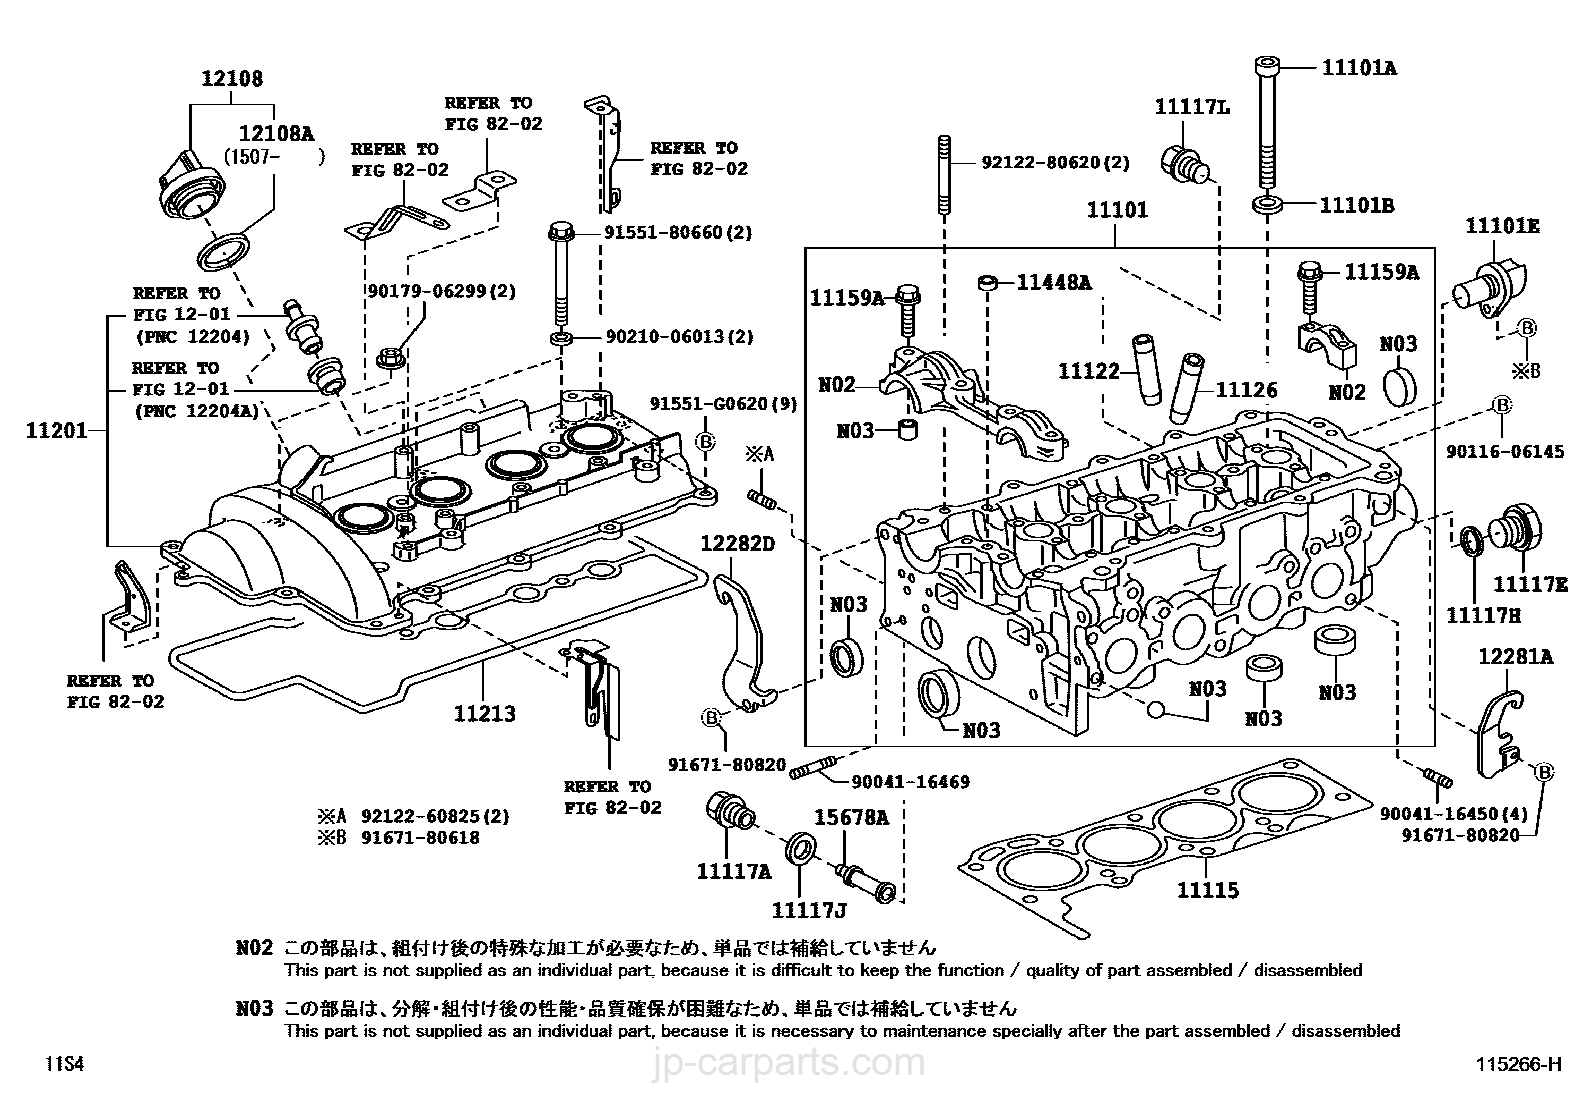 daihatsu engine diagram wiring diagrams konsultdaihatsu engine diagram [ 1592 x 1099 Pixel ]